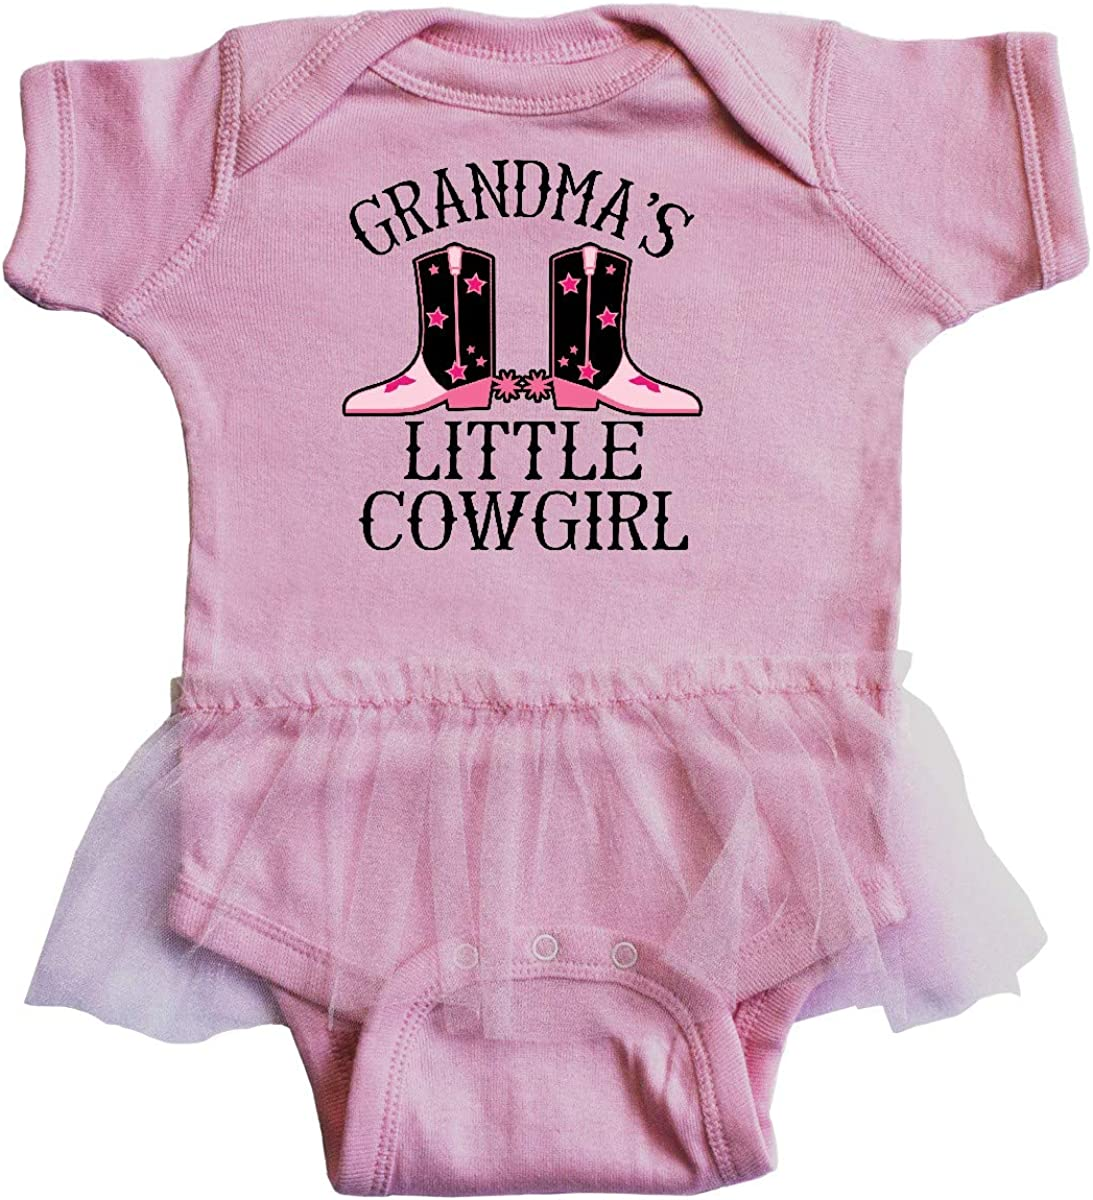 inktastic Grandma Little Cowgirl Baby Clothes Infant Tutu Bodysuit